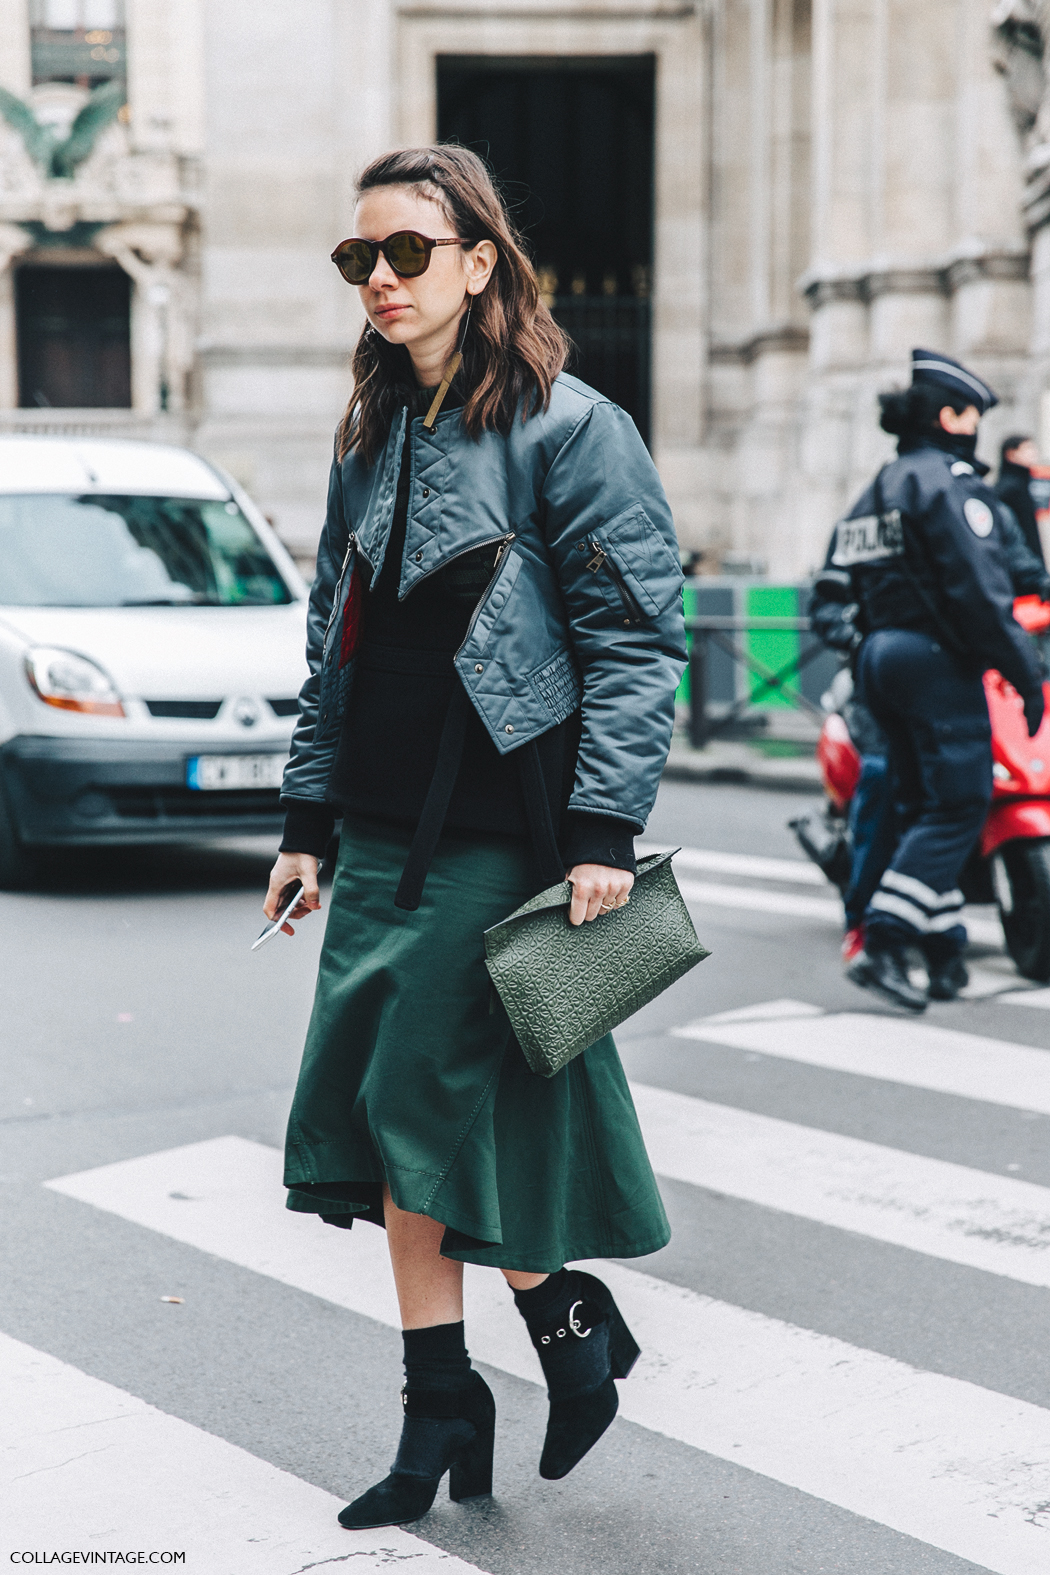 PFW-Paris_Fashion_Week_Fall_2016-Street_Style-Collage_Vintage-Stella_McCartney-Natasha_Goldenberg-Loewe_Clutch-Celine_Shoes-Bomber-1